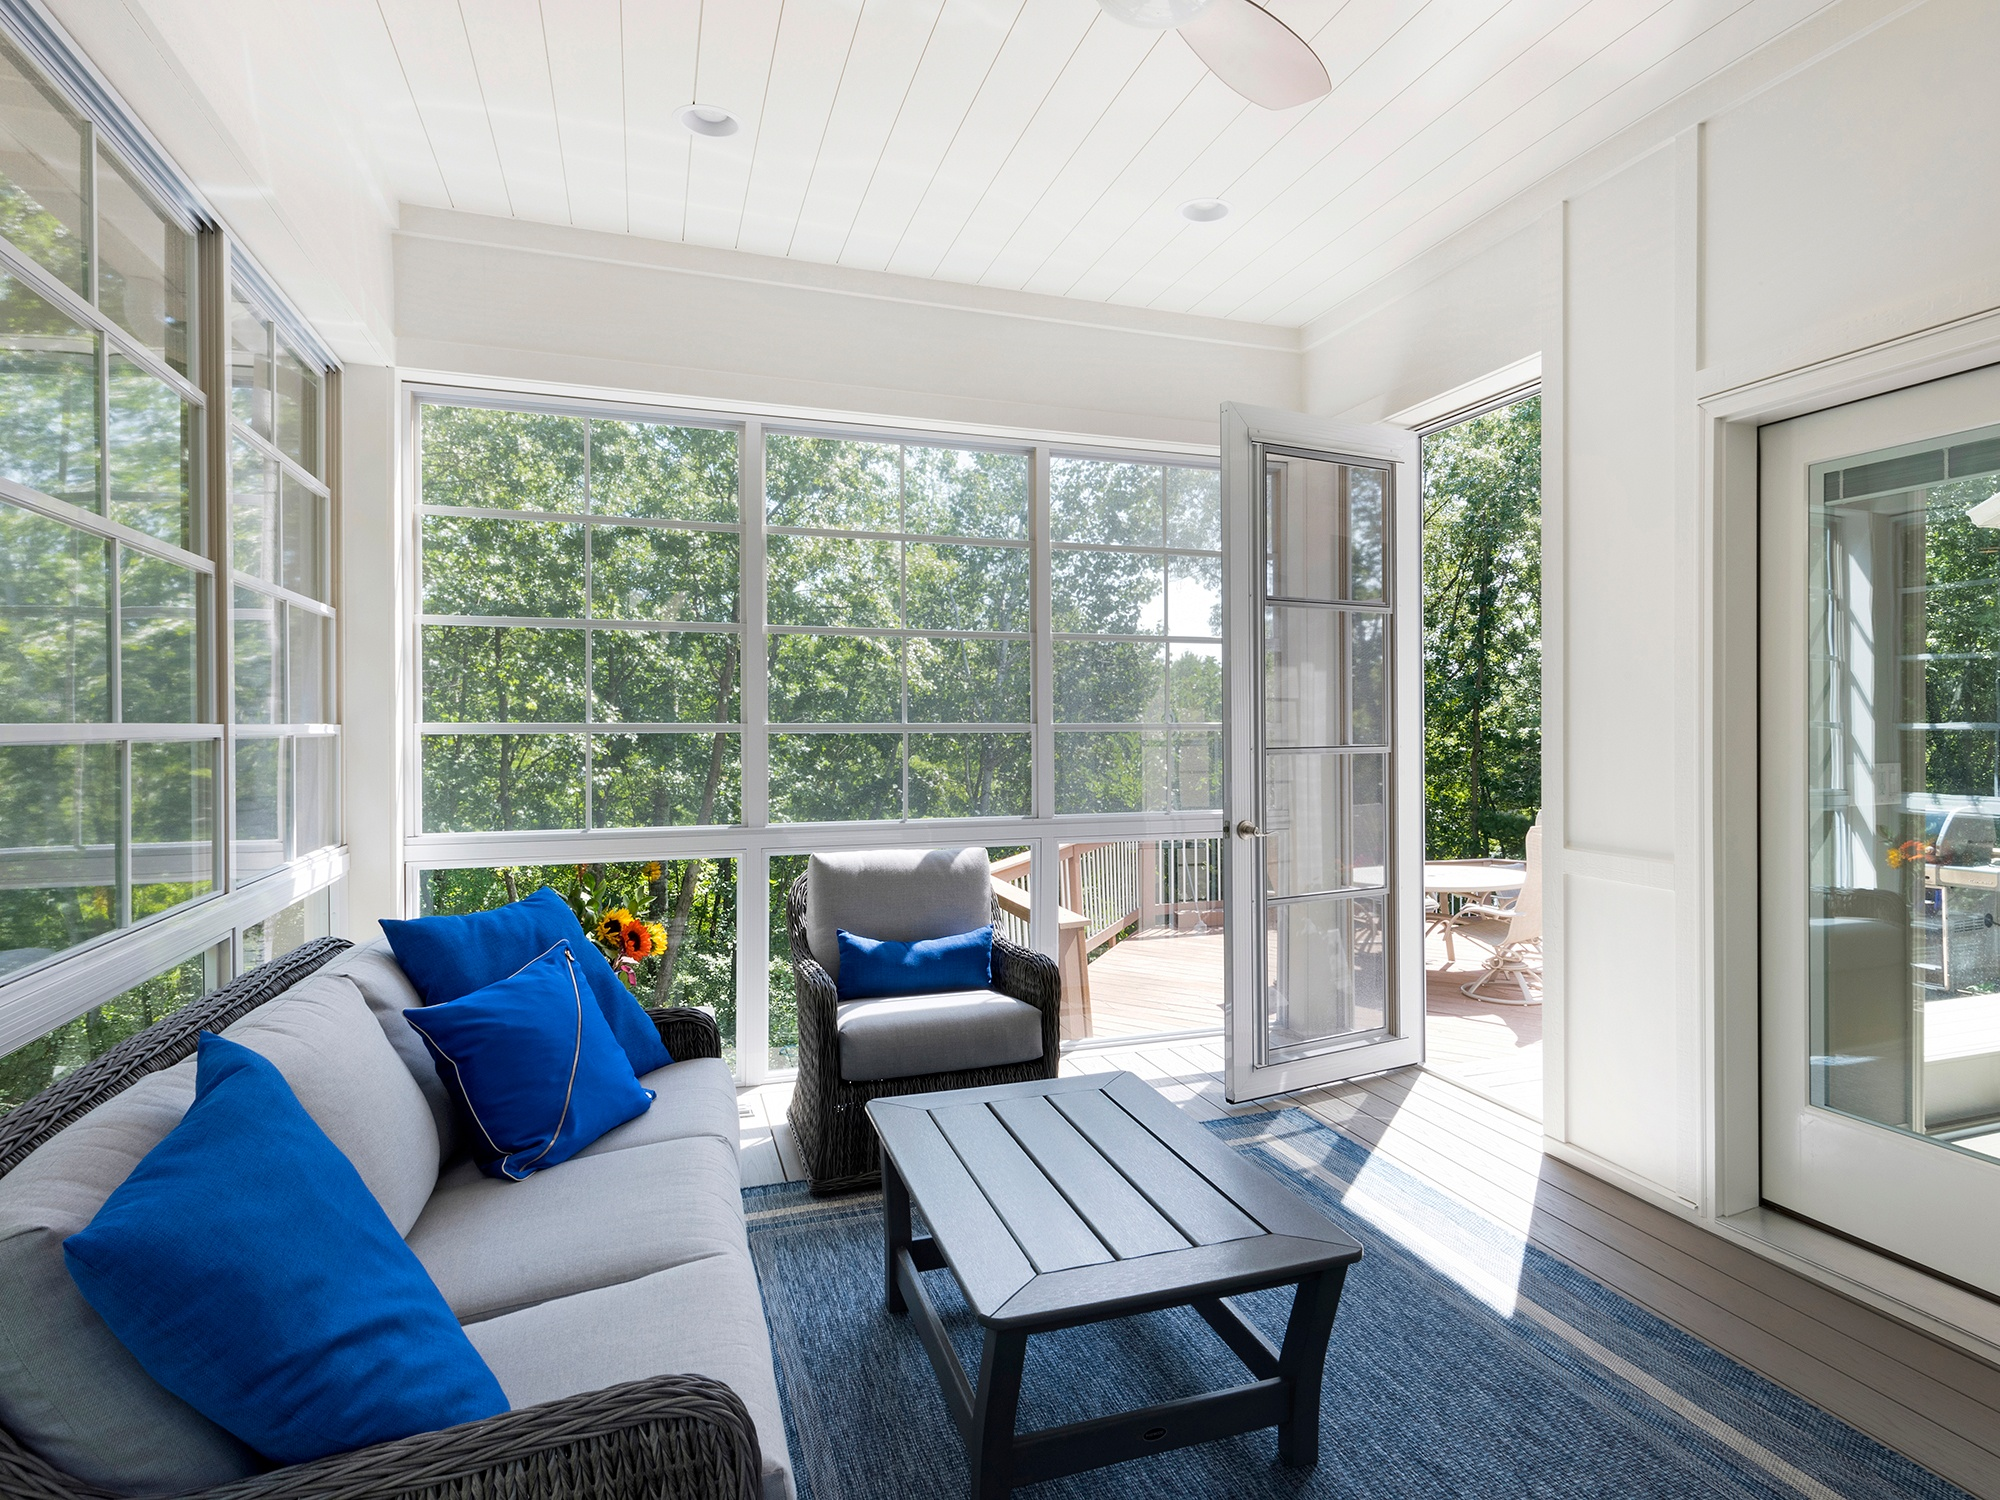 Heating And Cooling Your 3 Season Porch